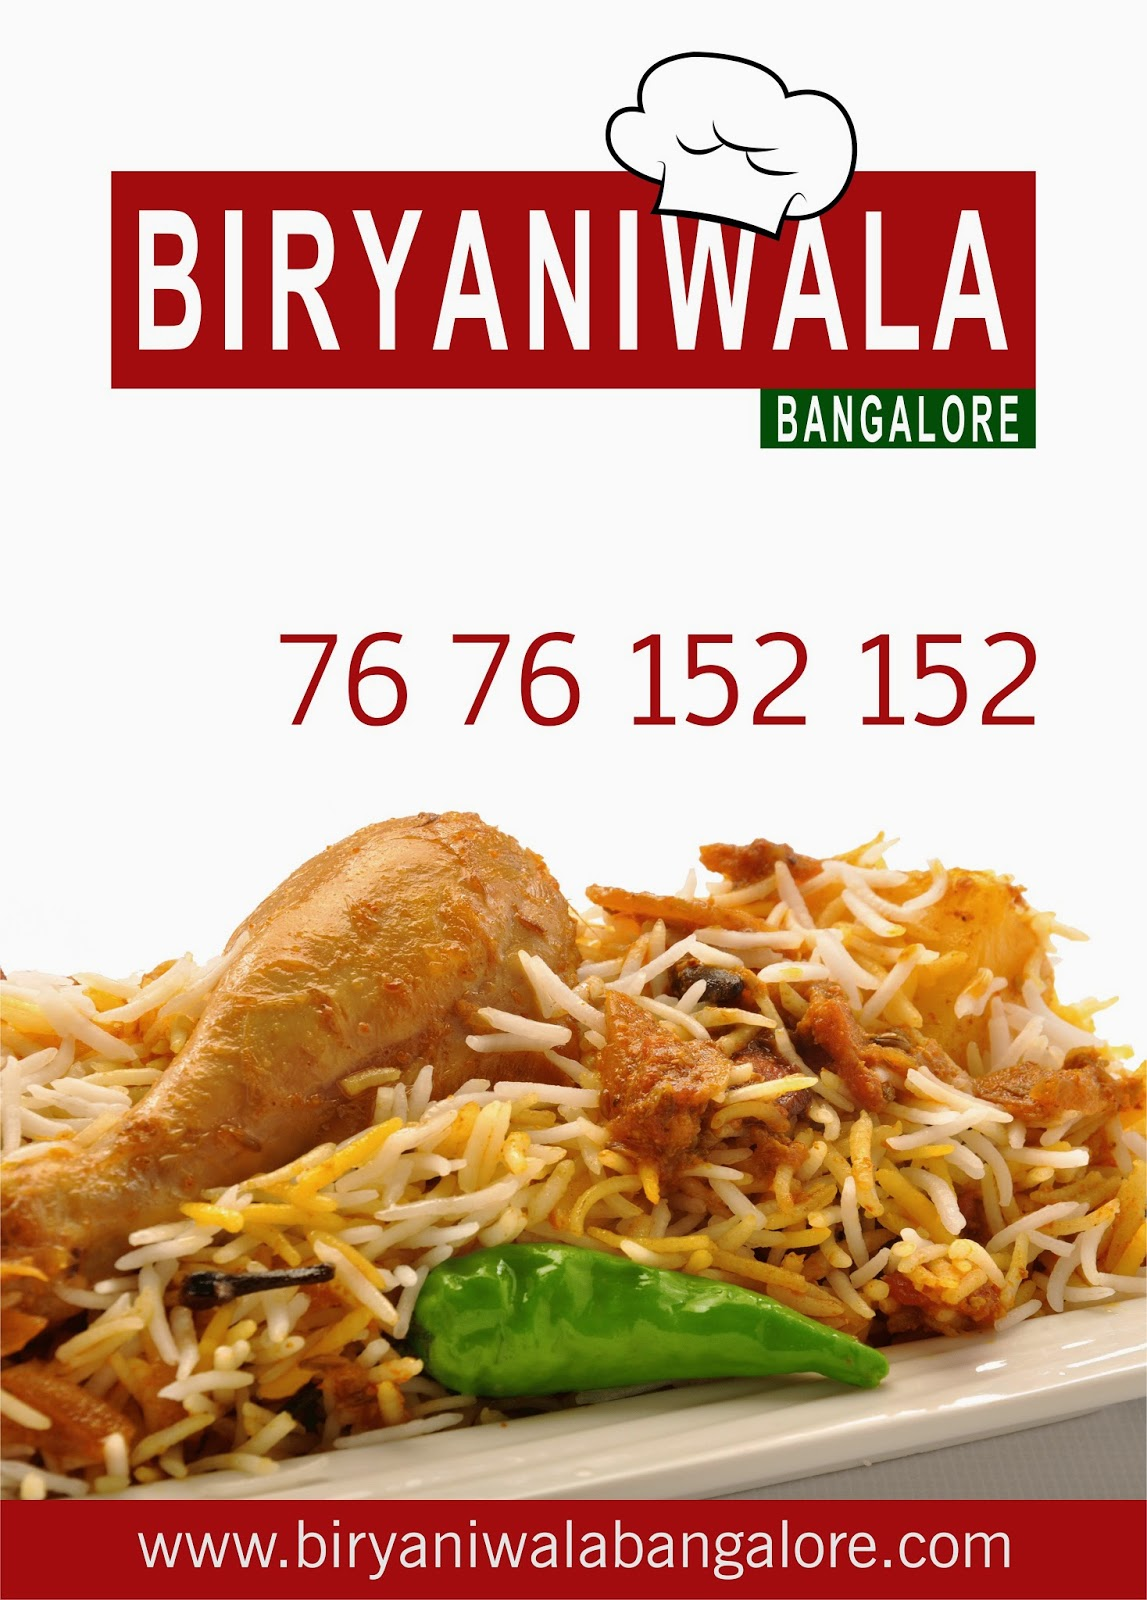 Bangalore Franchise Opportunities And Business Ideas